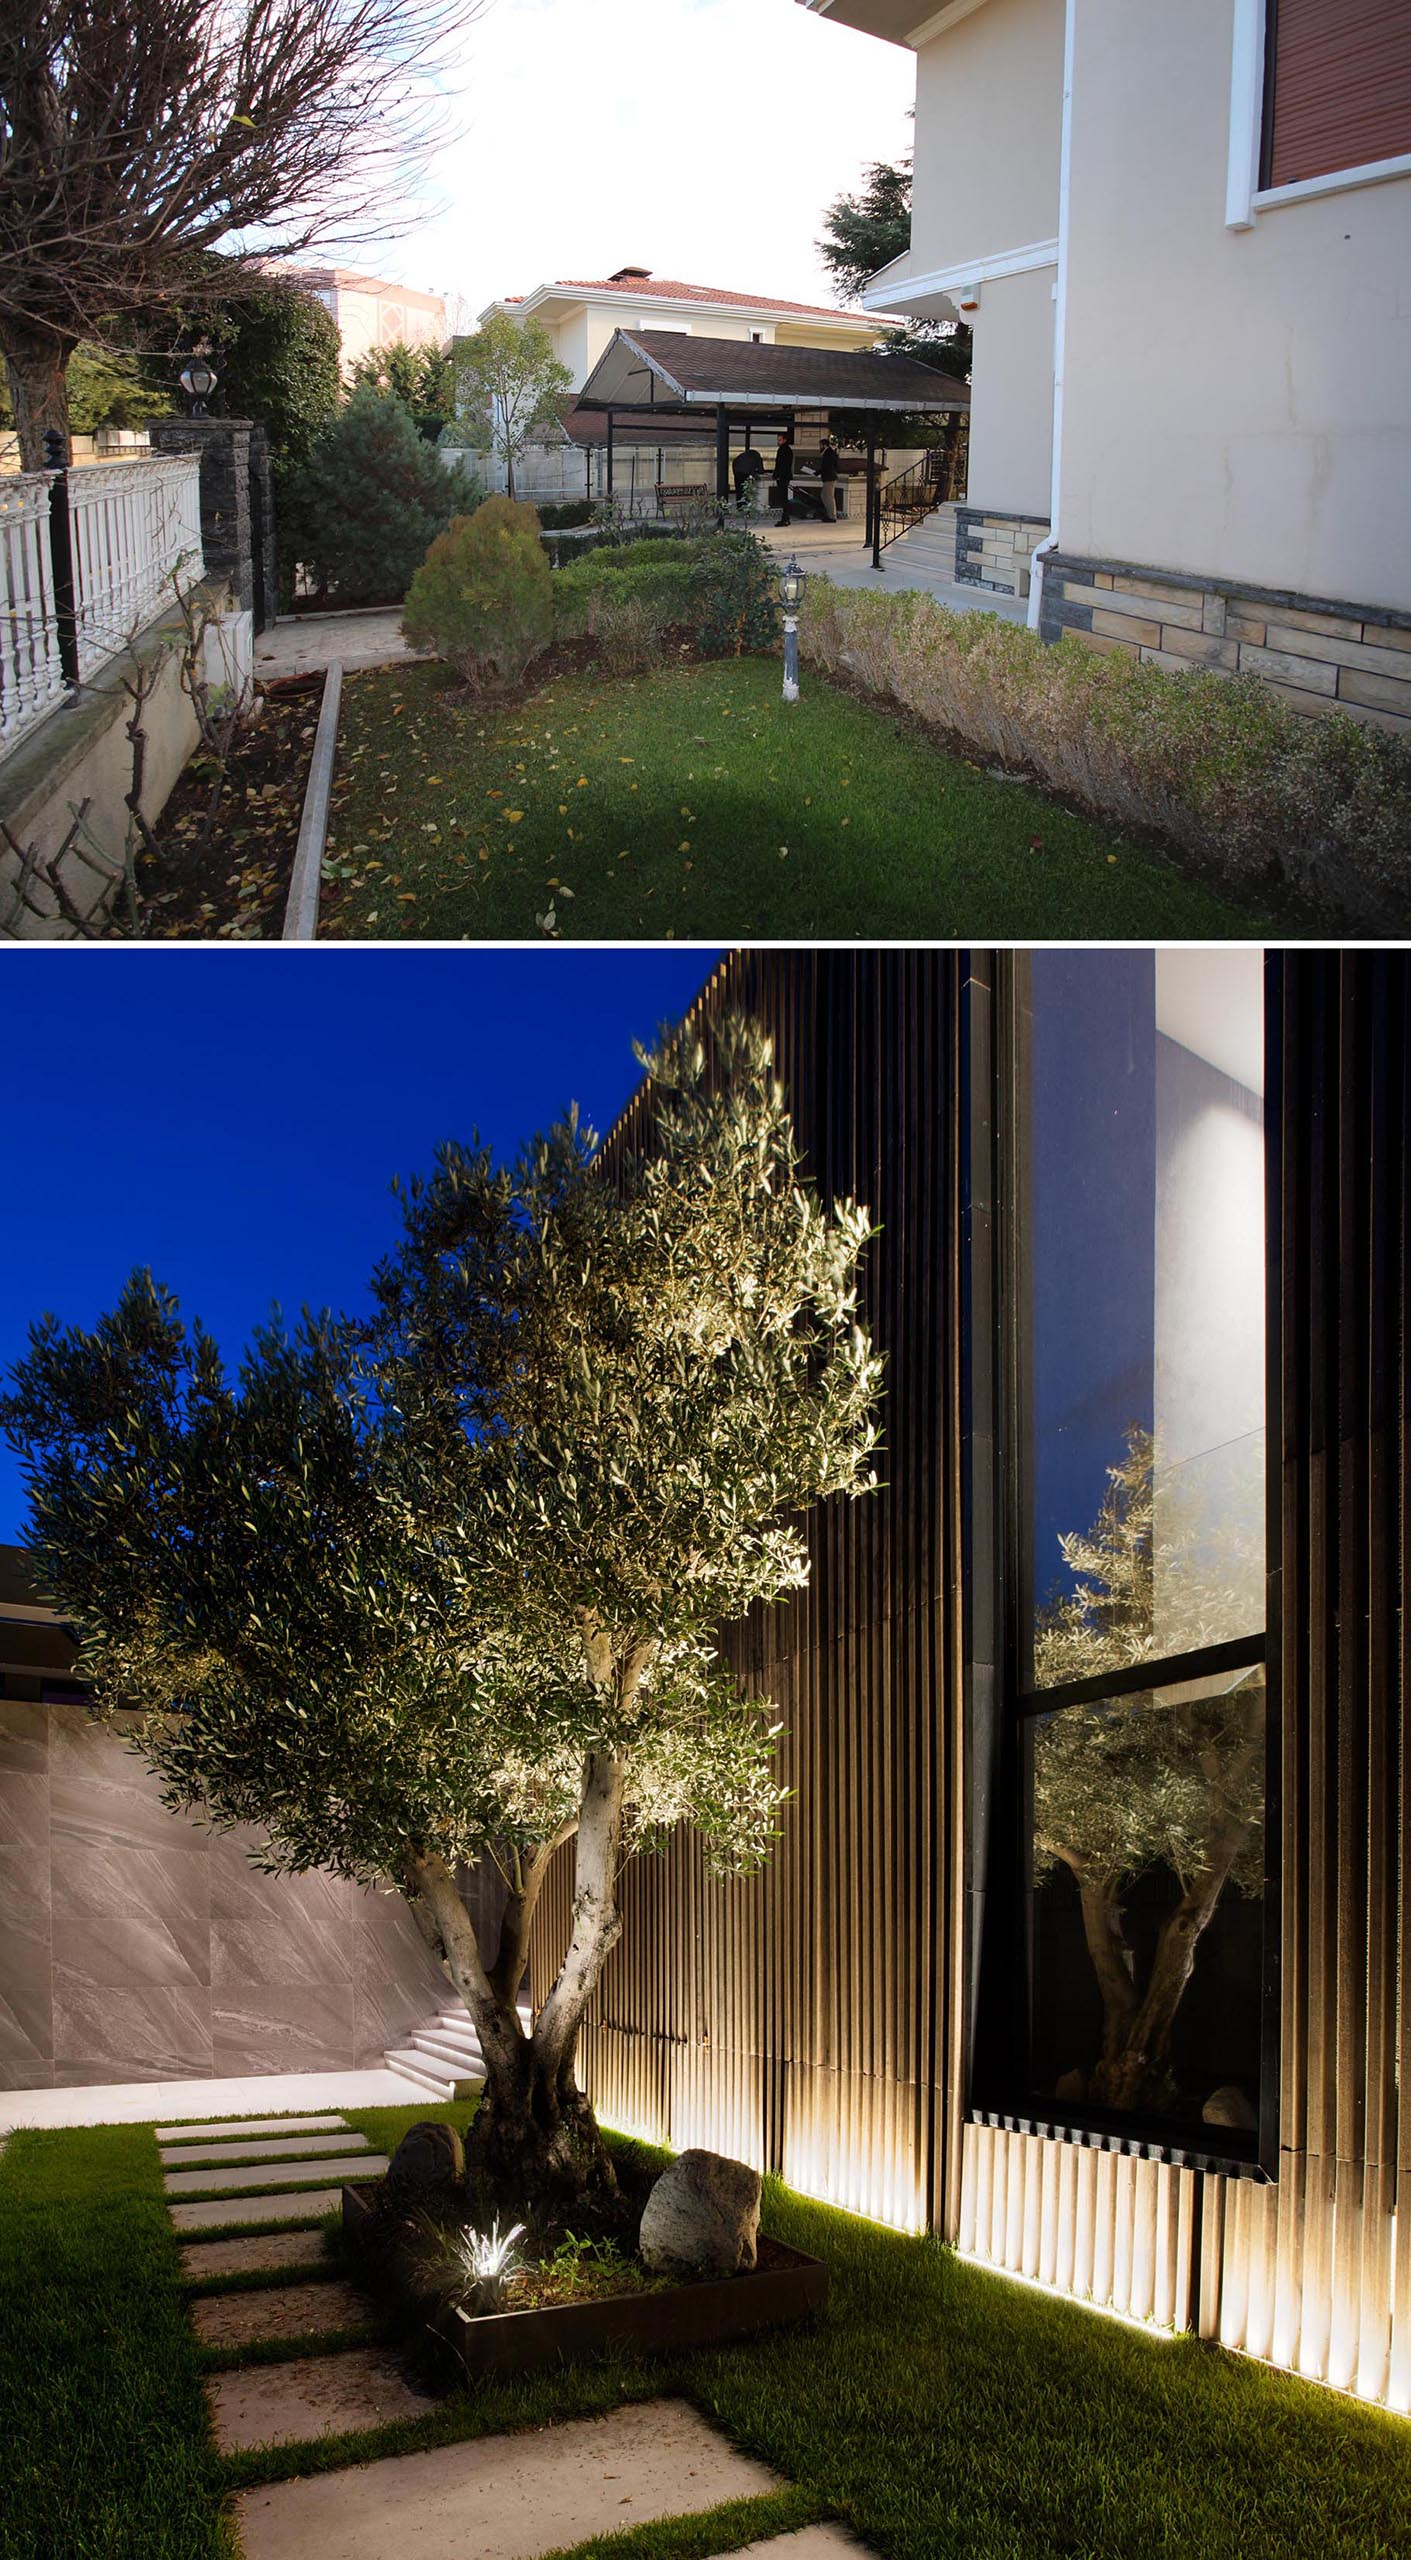 A yard renovation that includes a new garden path, large tree, and exterior lighting.